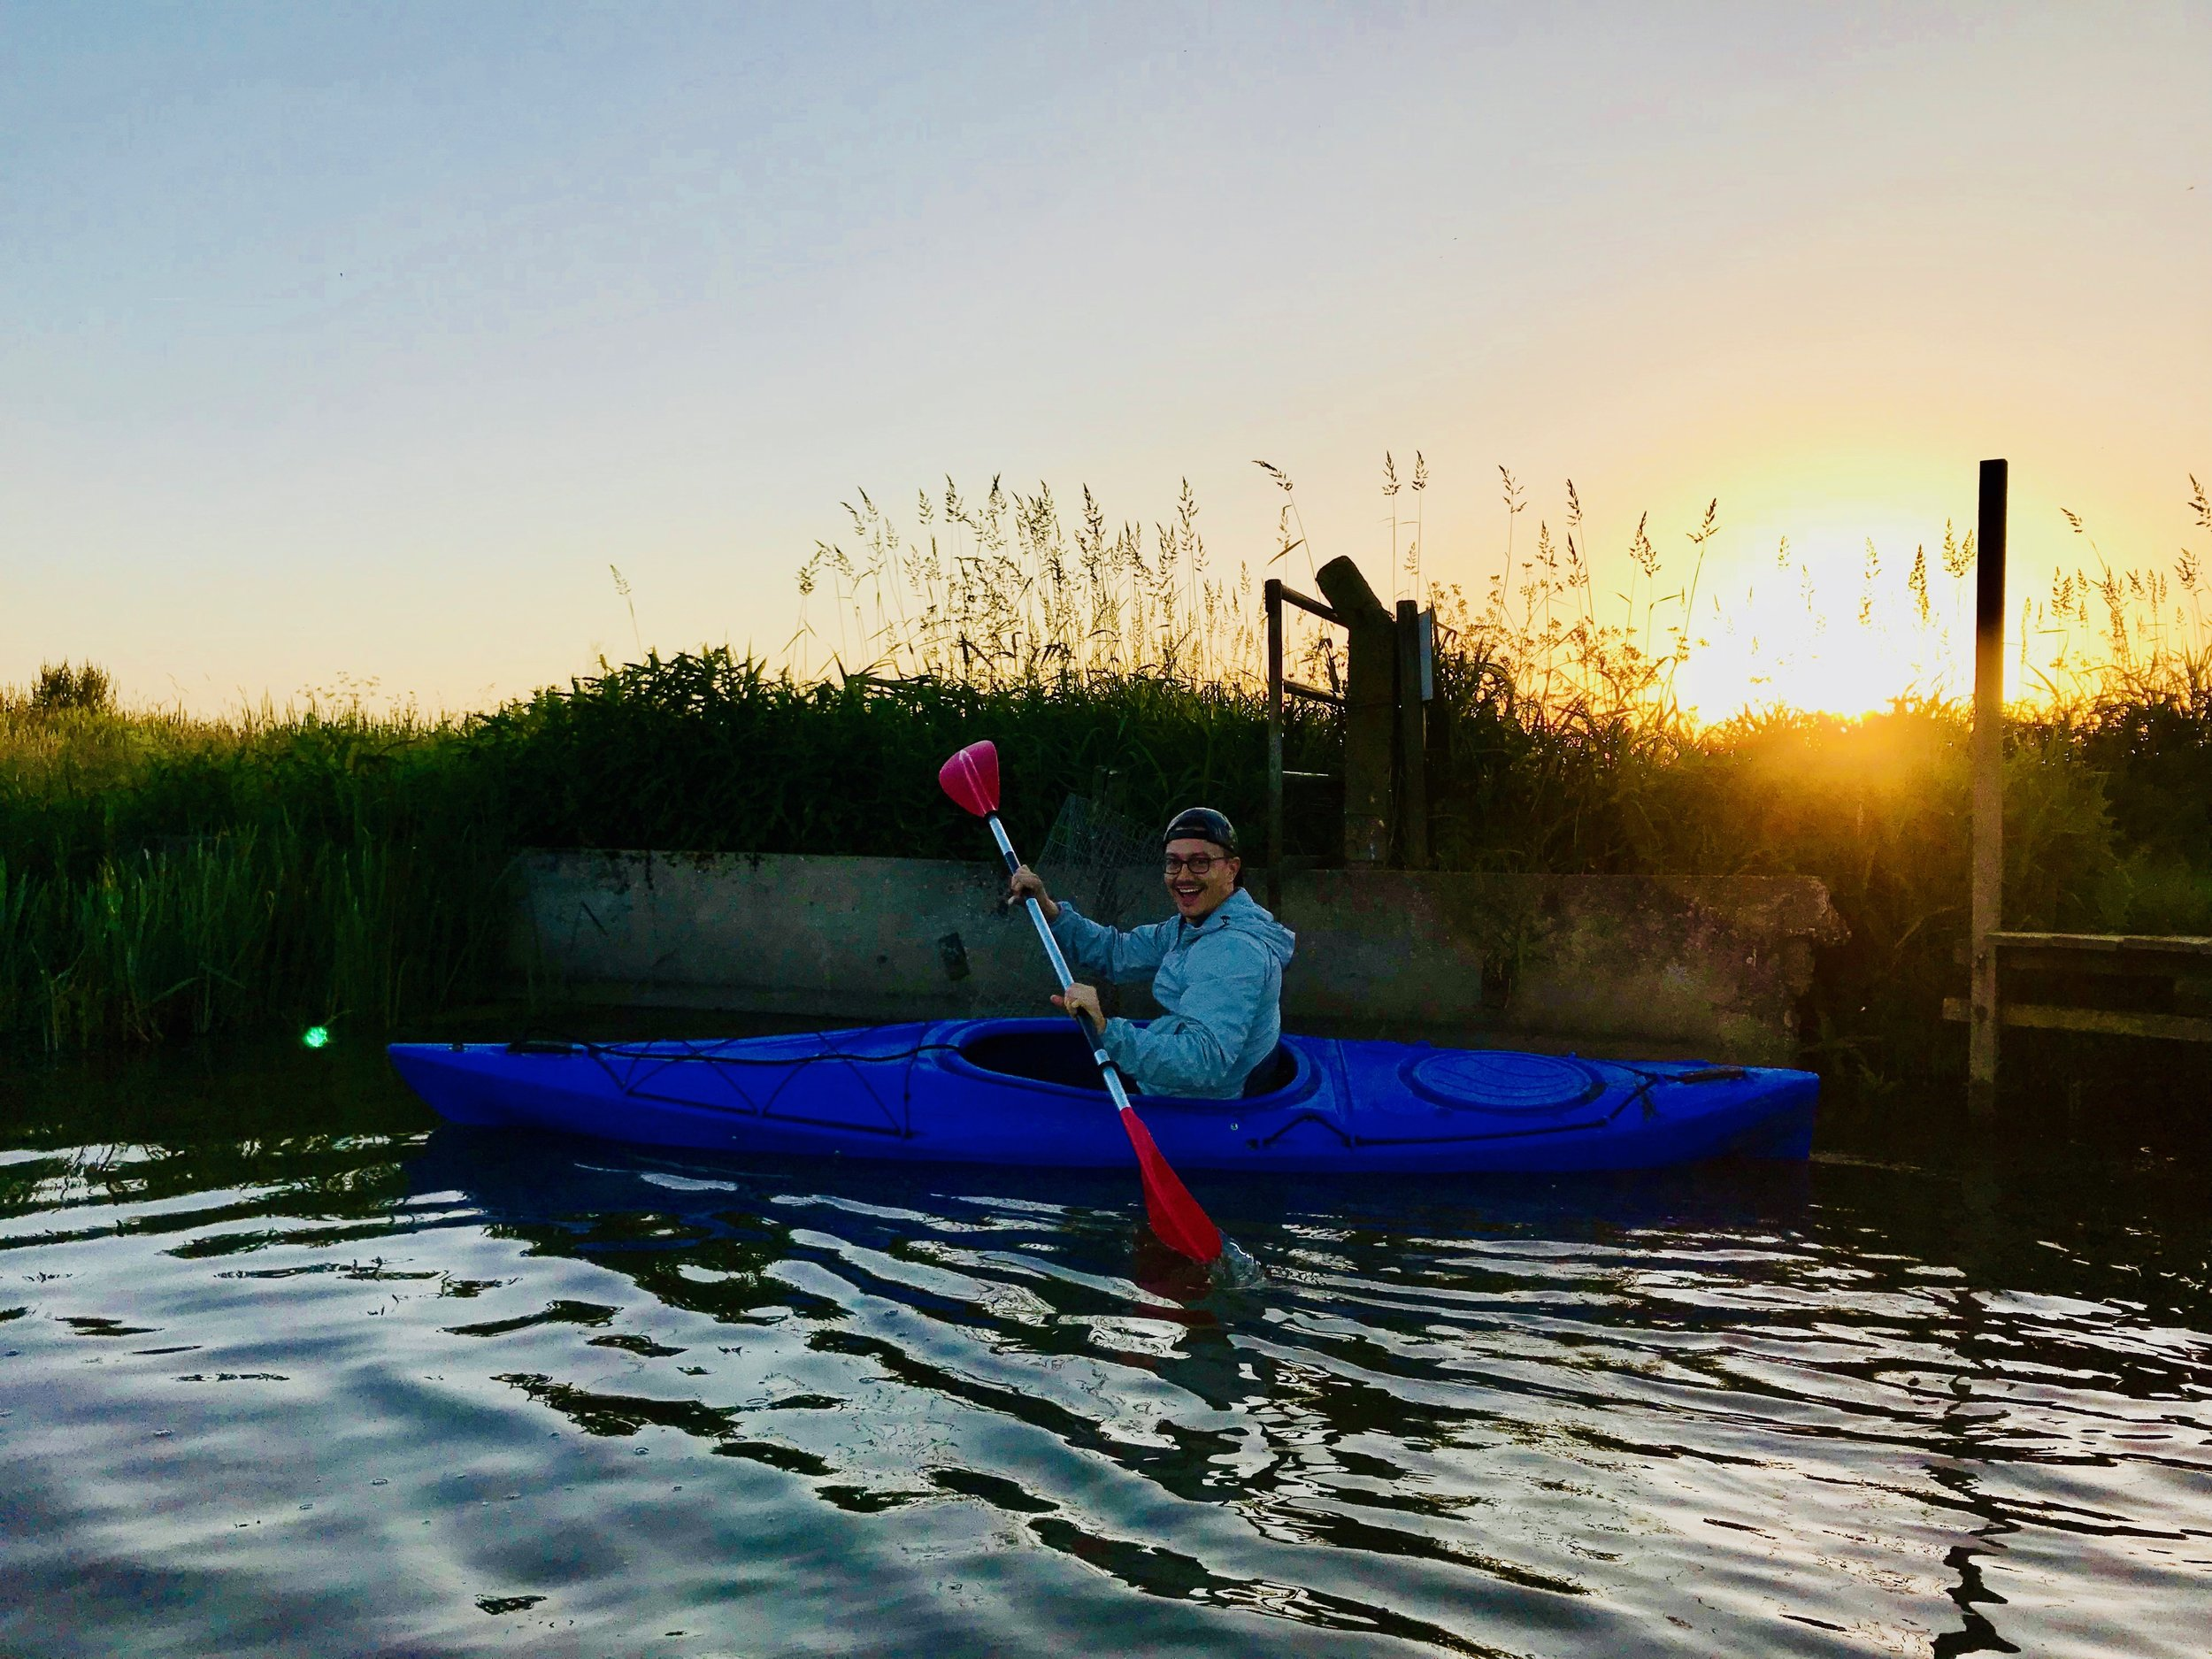 Corey De Tar kayaking at our Airbnb in Holland!